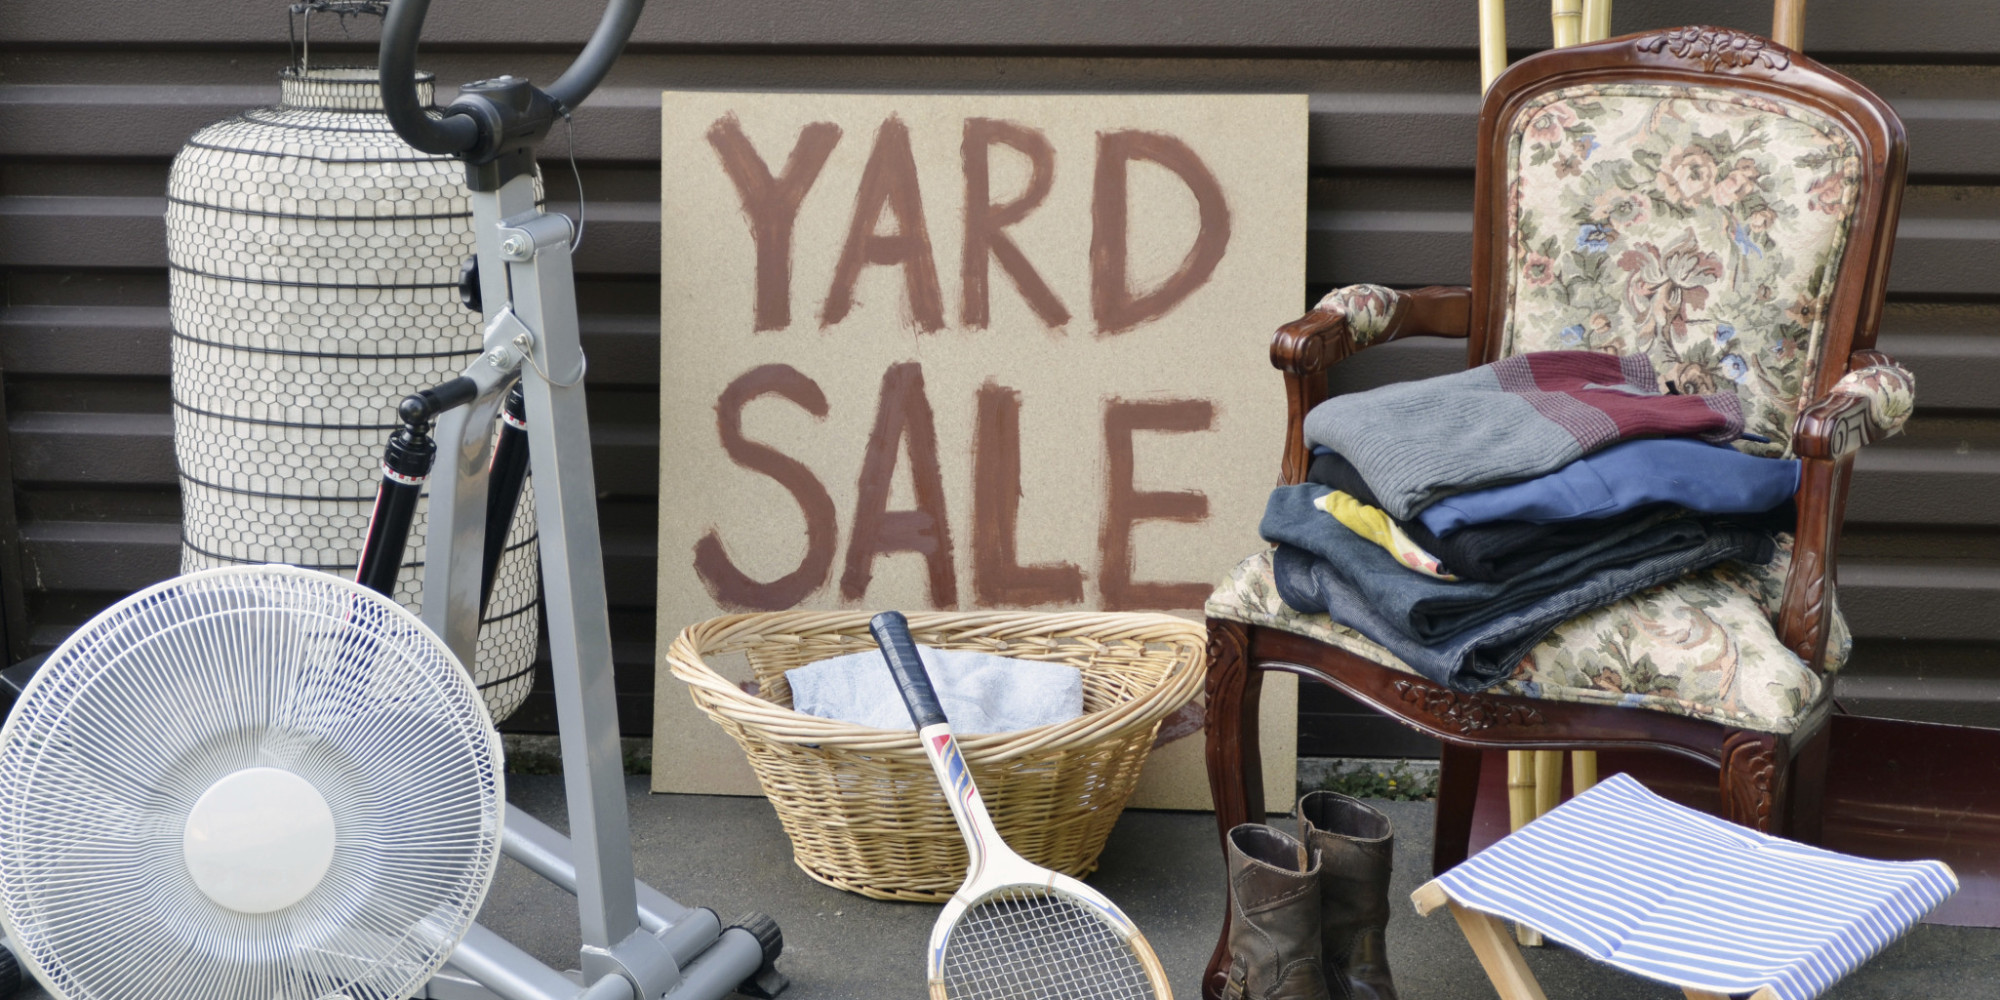 11 things no one will buy at your yard sale huffpost for Yard furniture for sale